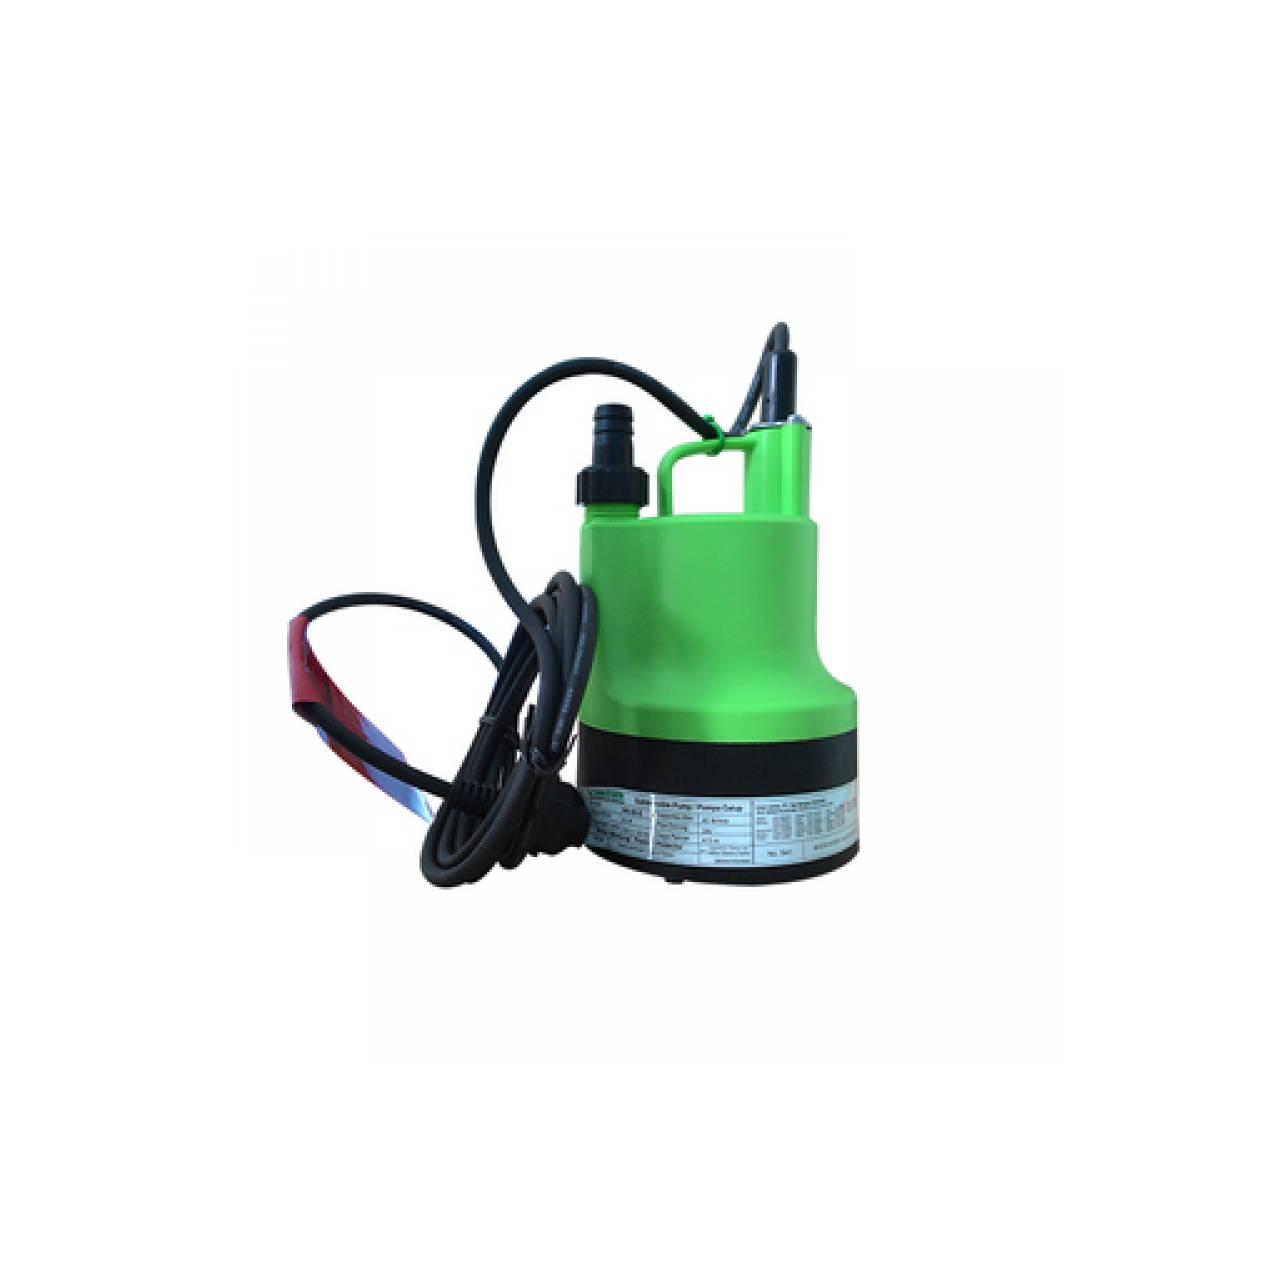 WASSER Pompa Celup Submersible Pump WD 80 E